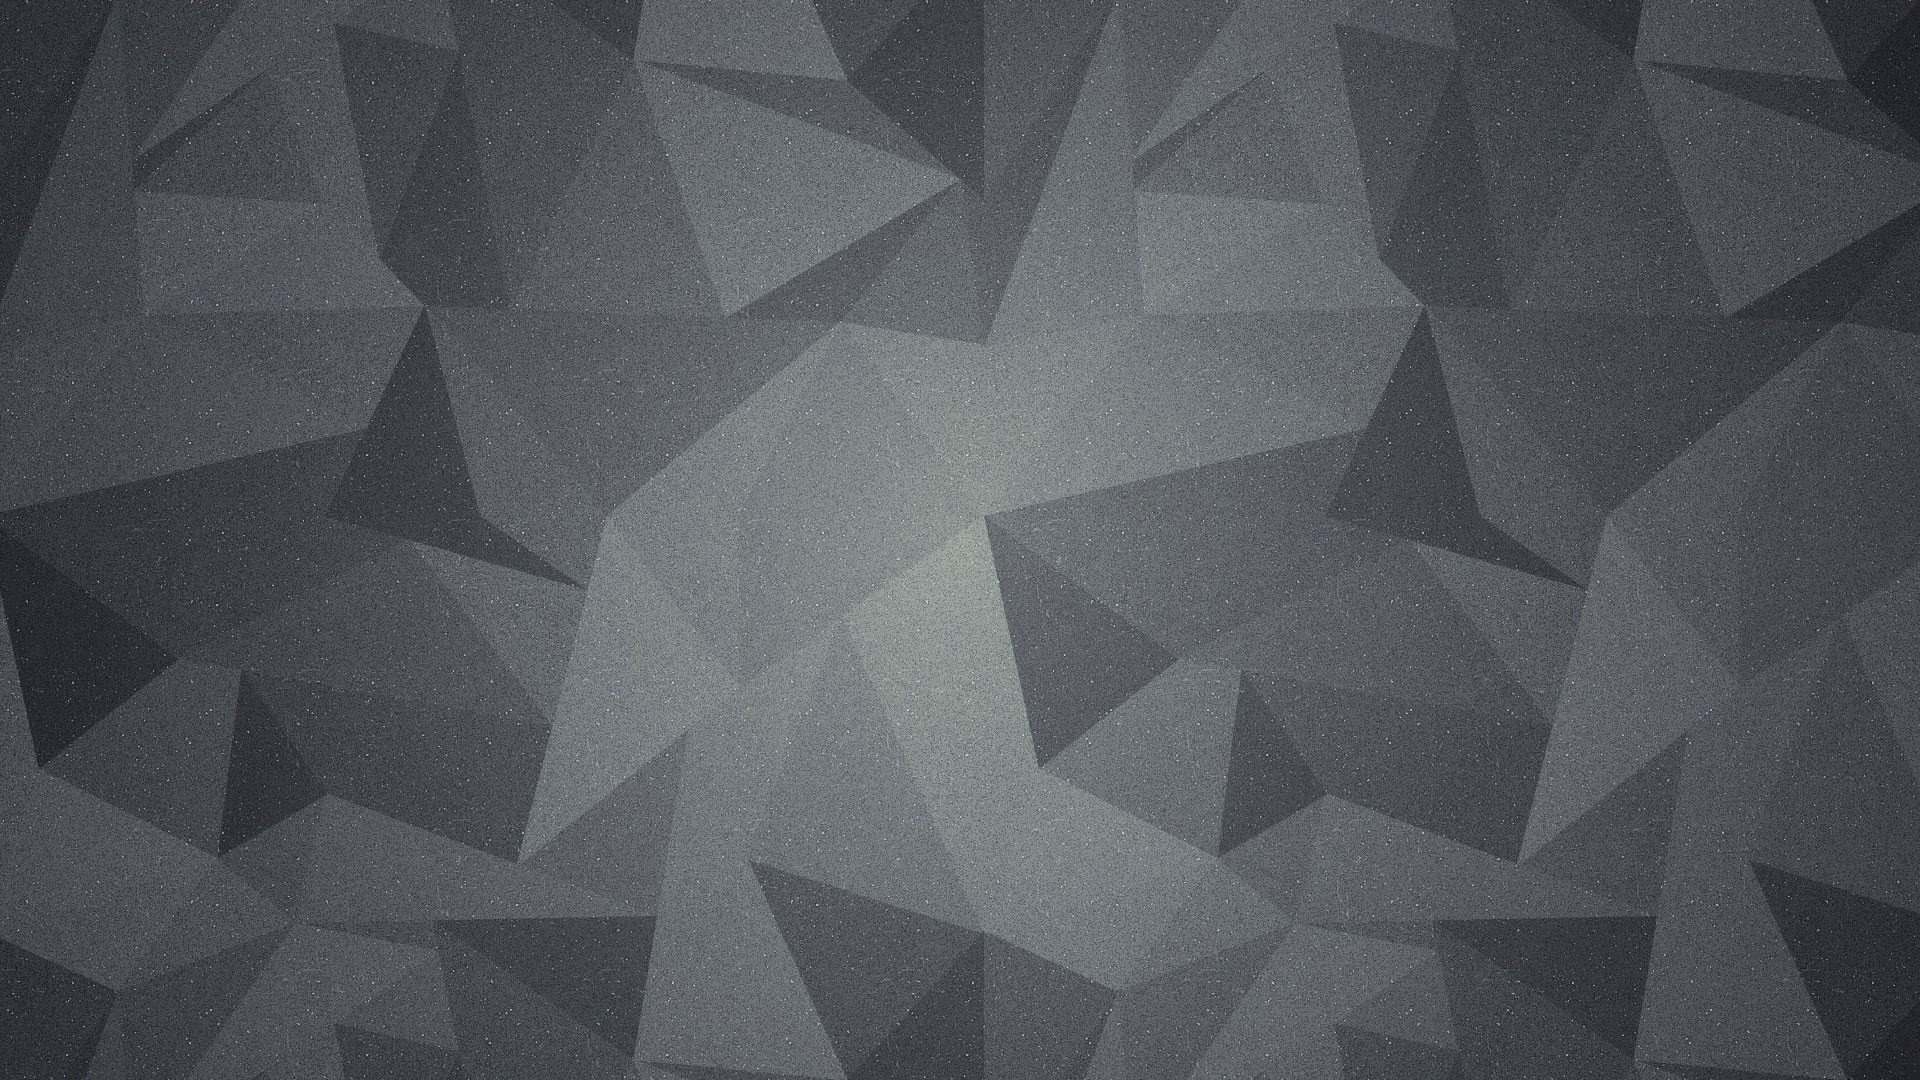 Grey hd wallpapers wallpapersafari for Gray and white wallpaper designs